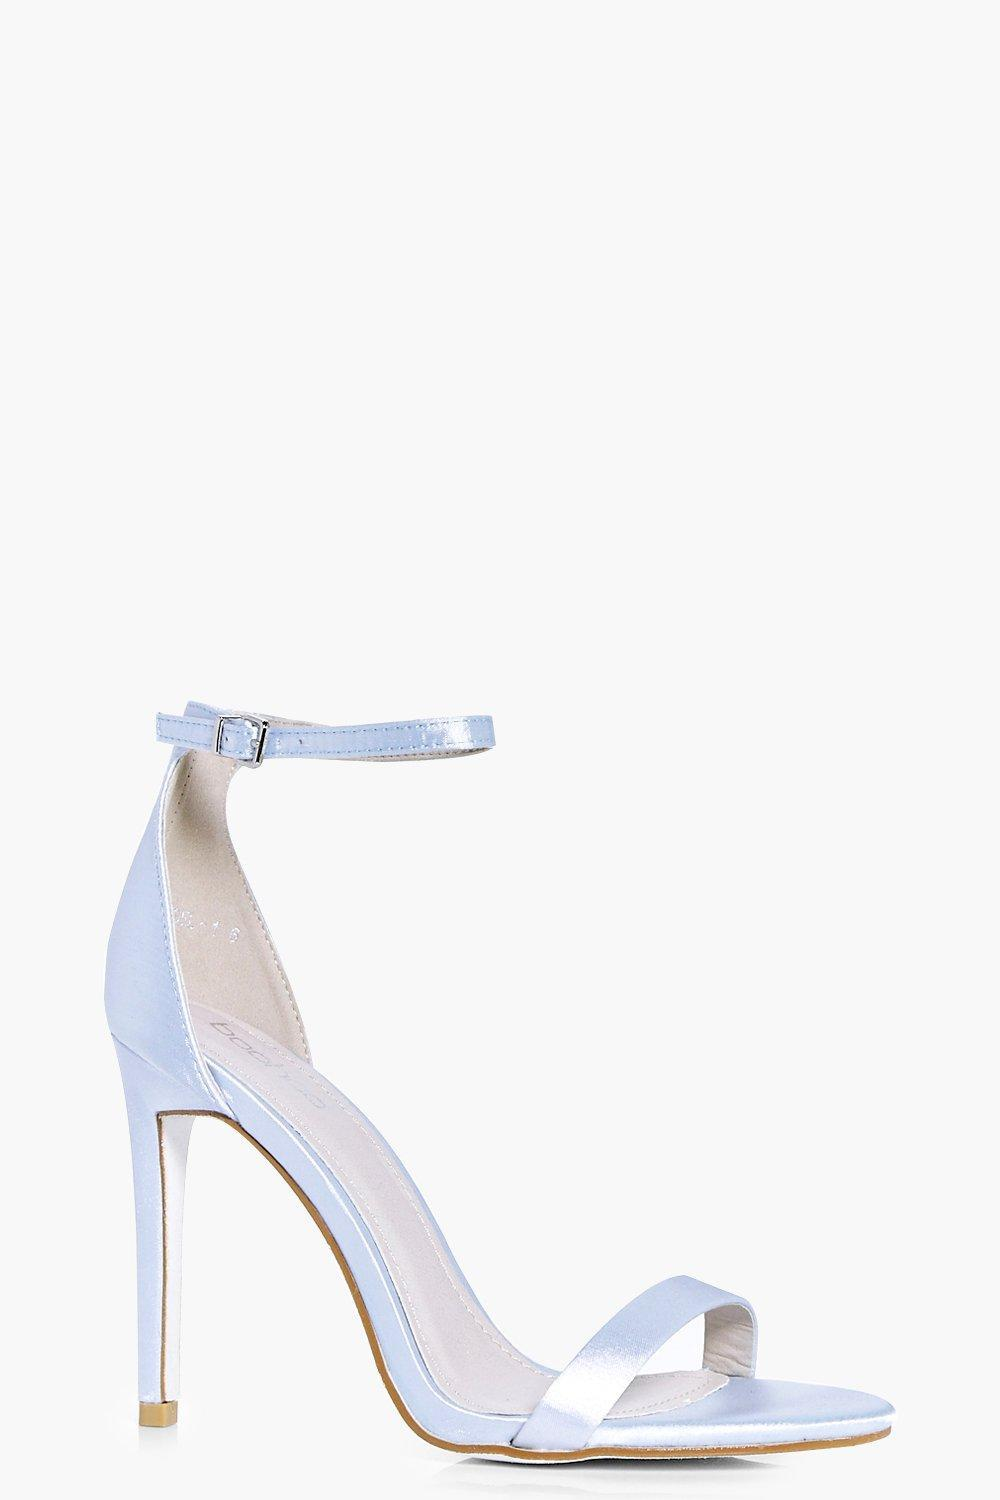 b4afabd3e01 Boohoo Rosie Bridal Satin Glitter Sole Two Part in Blue - Lyst